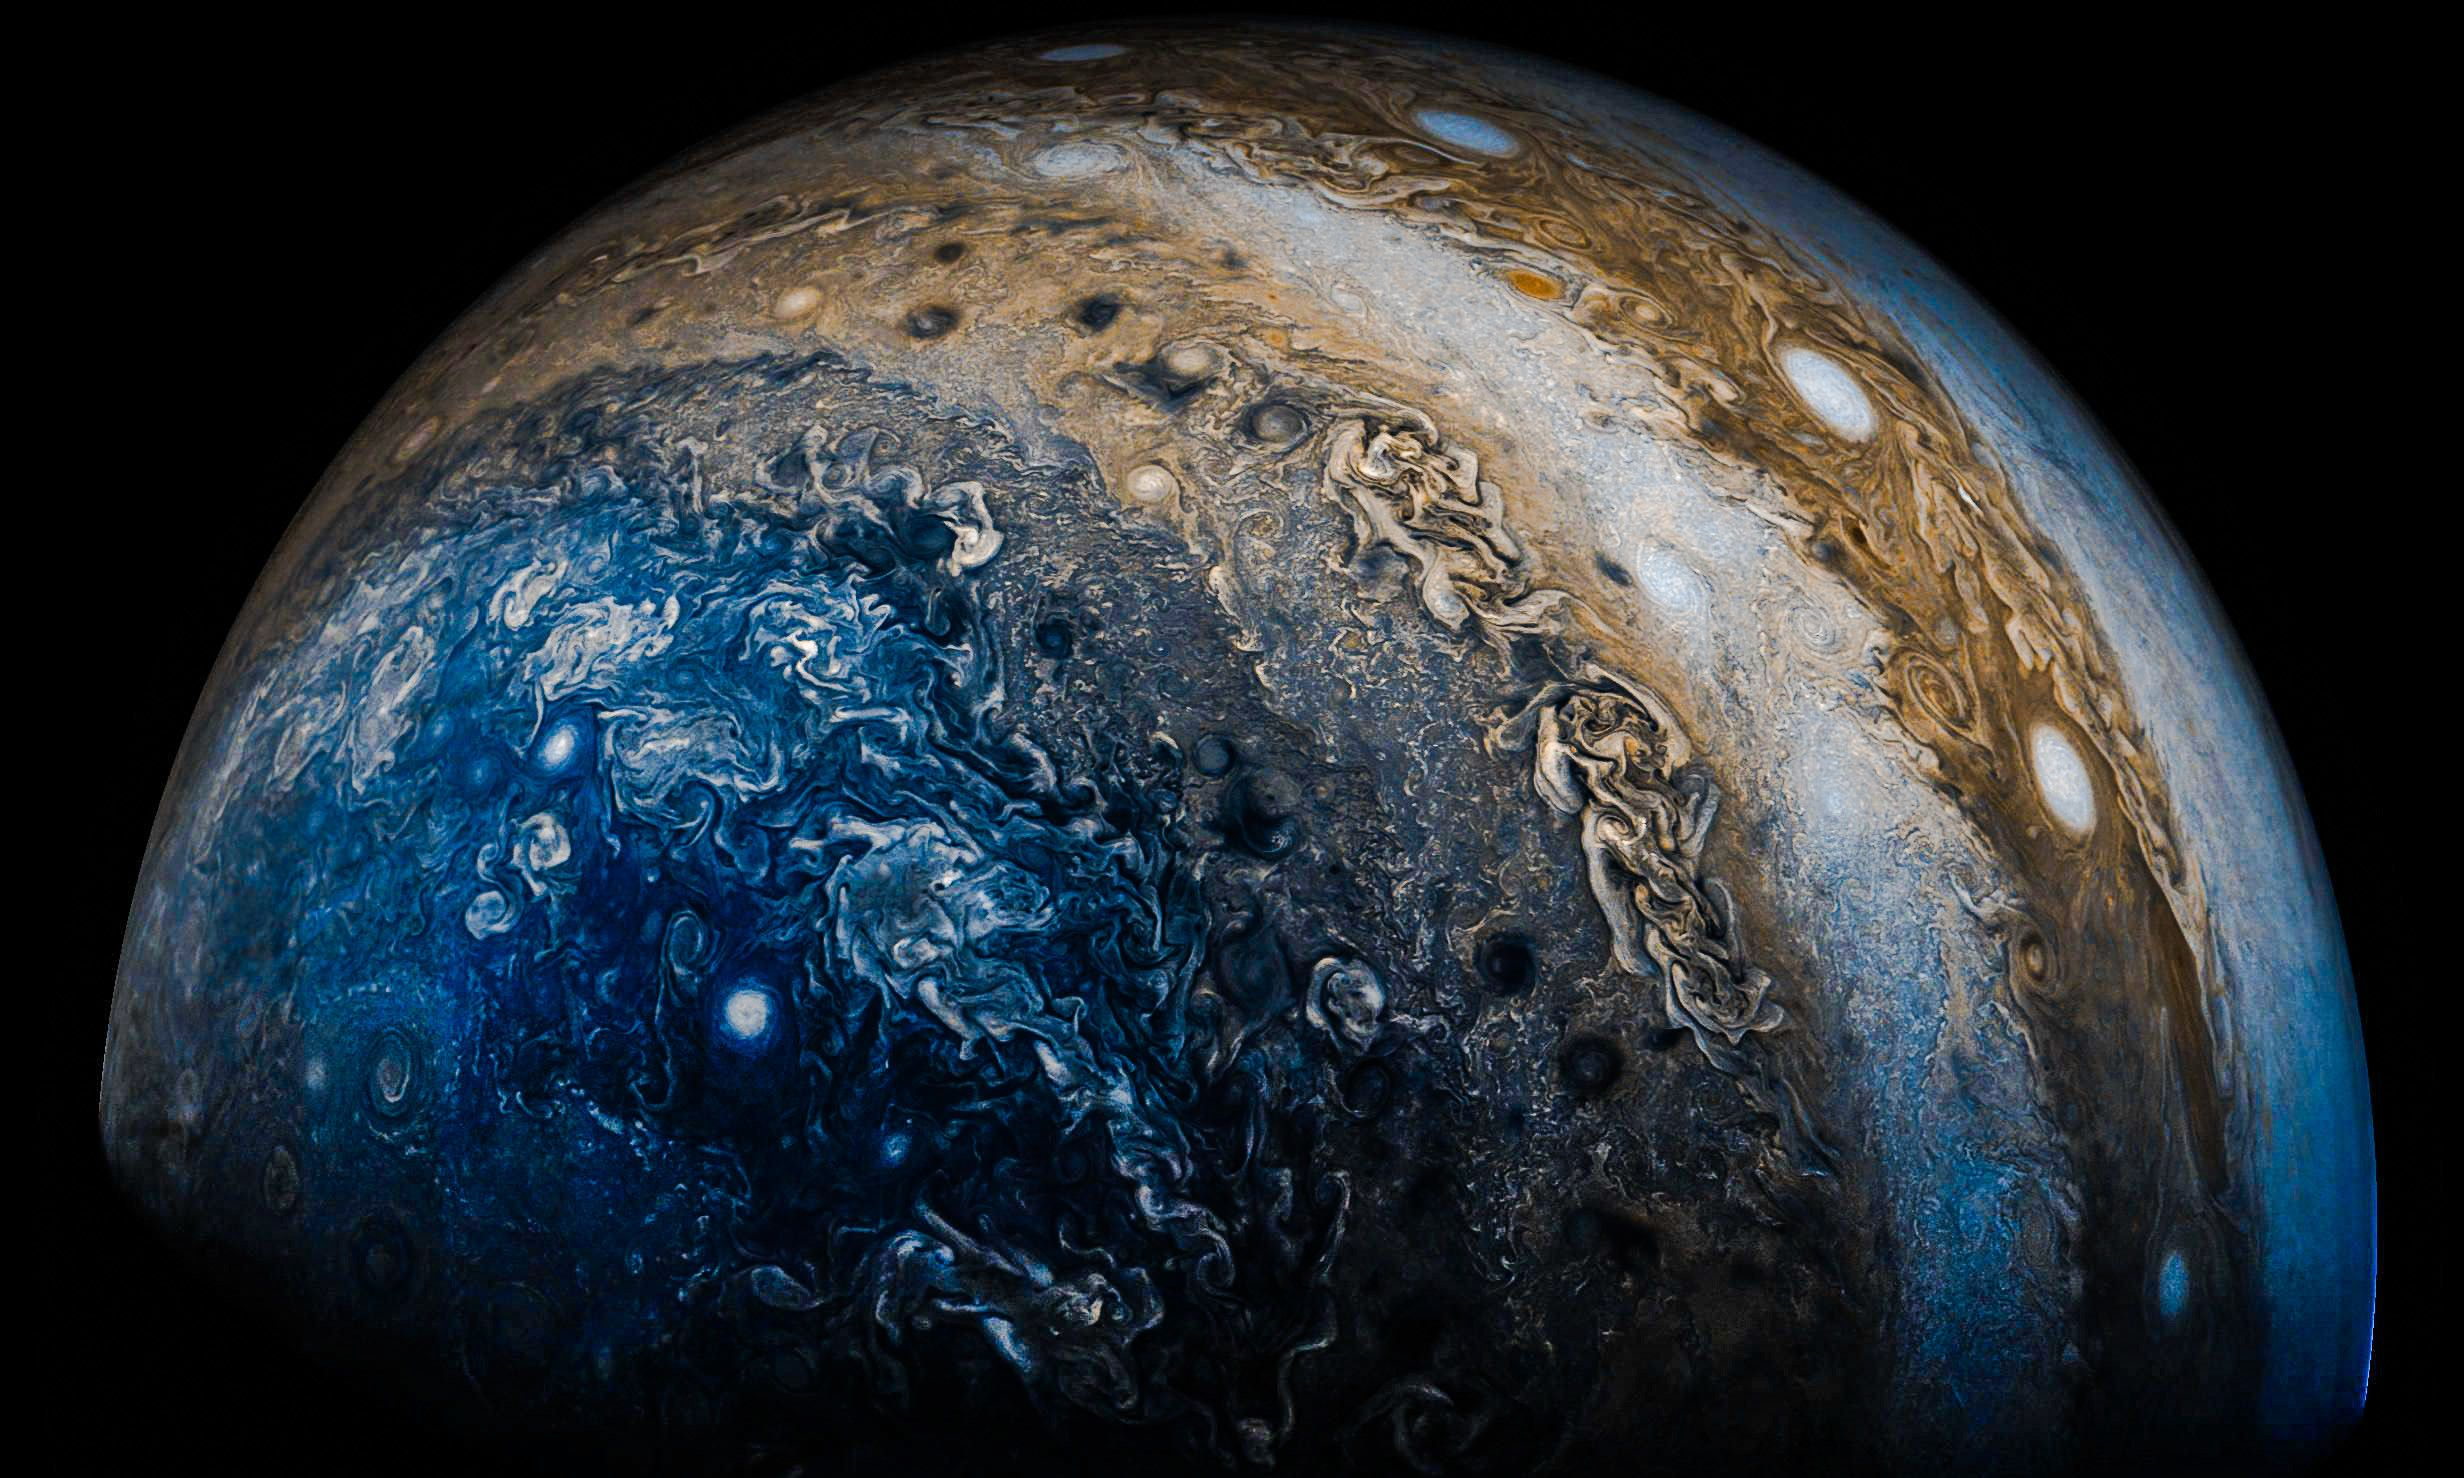 Jupiter 4K Wallpapers   Top Jupiter 4K Backgrounds 2464x1478